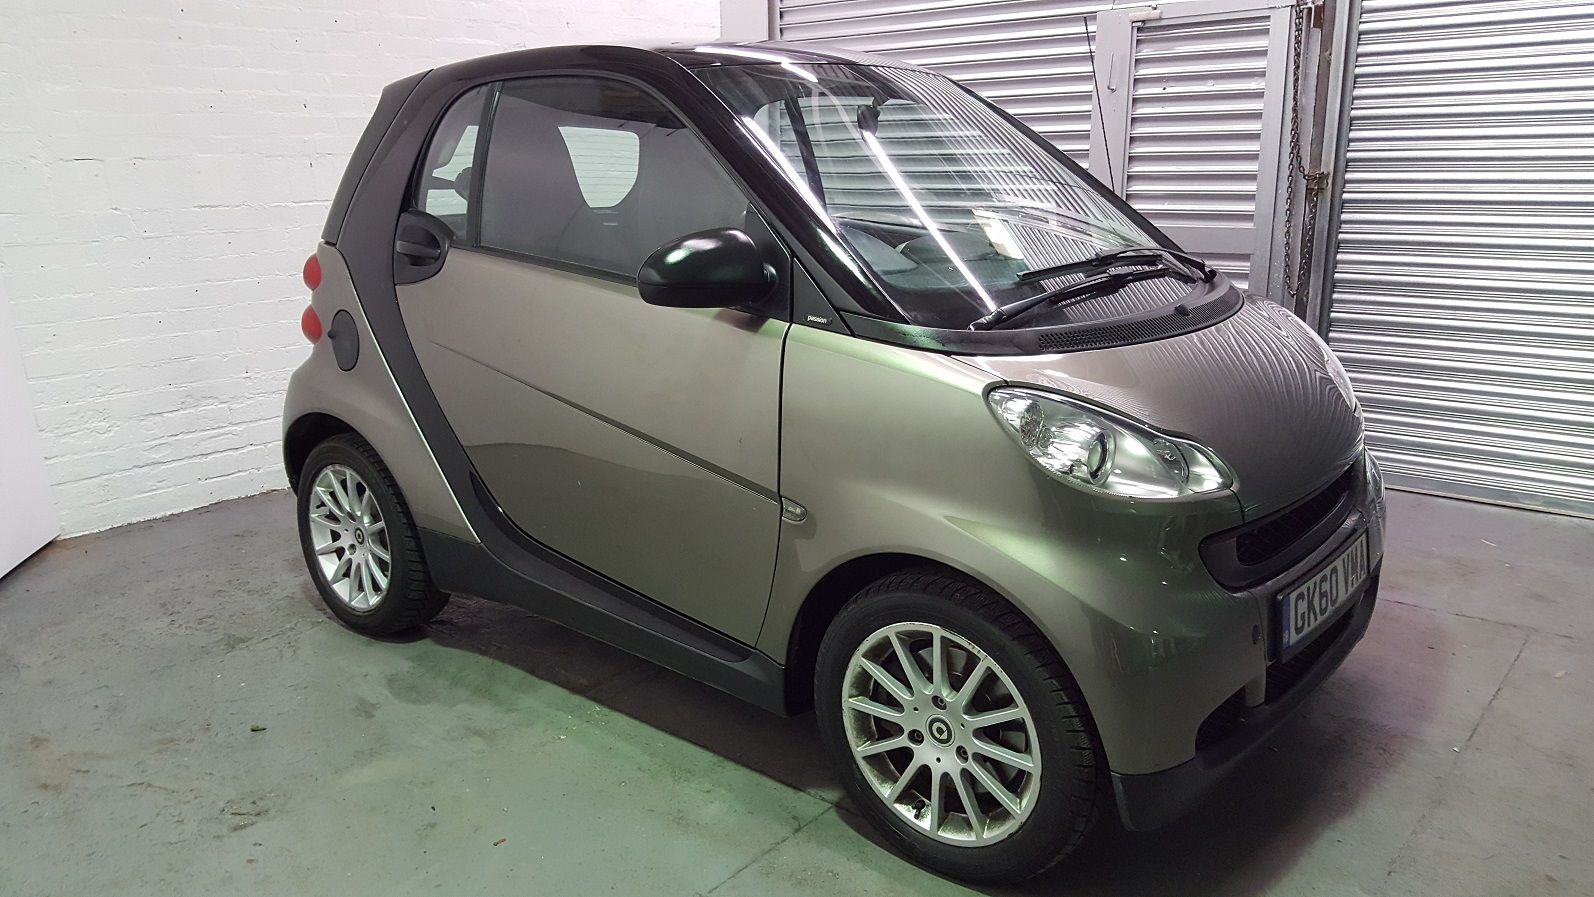 Smart Car Mpg: 2010 Smart Car ForTwo Passion CDi Diesel 799cc Low Mileage